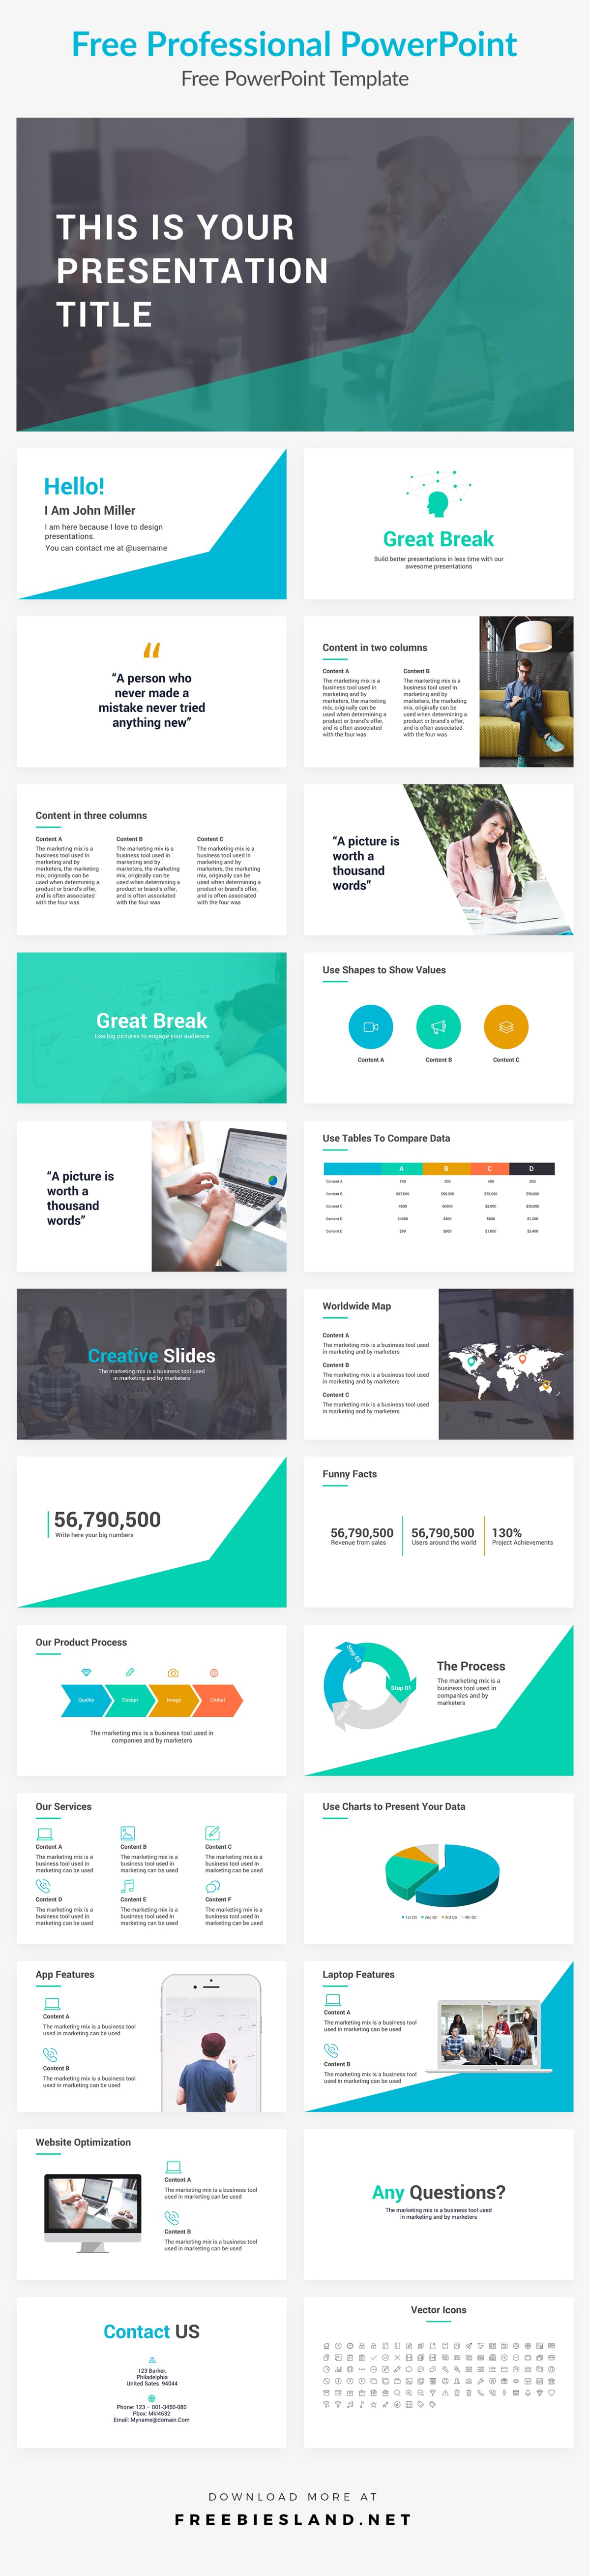 free professional powerpoint presentation template pptx, ppt, Presentation templates